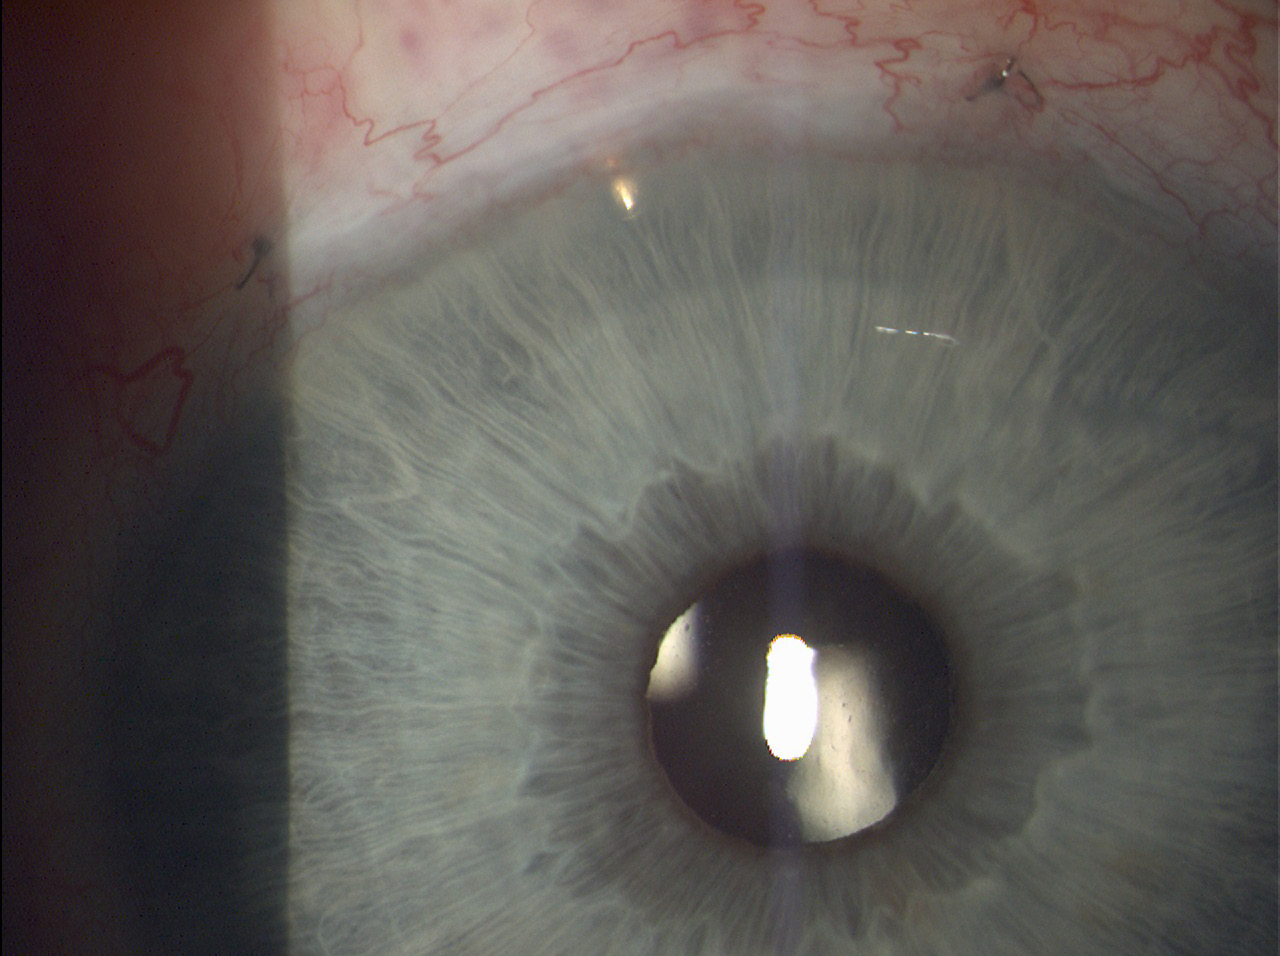 EX-PRESS implant located in the upper outer quadrant of the right eye (Source: own processing, year: 2015)